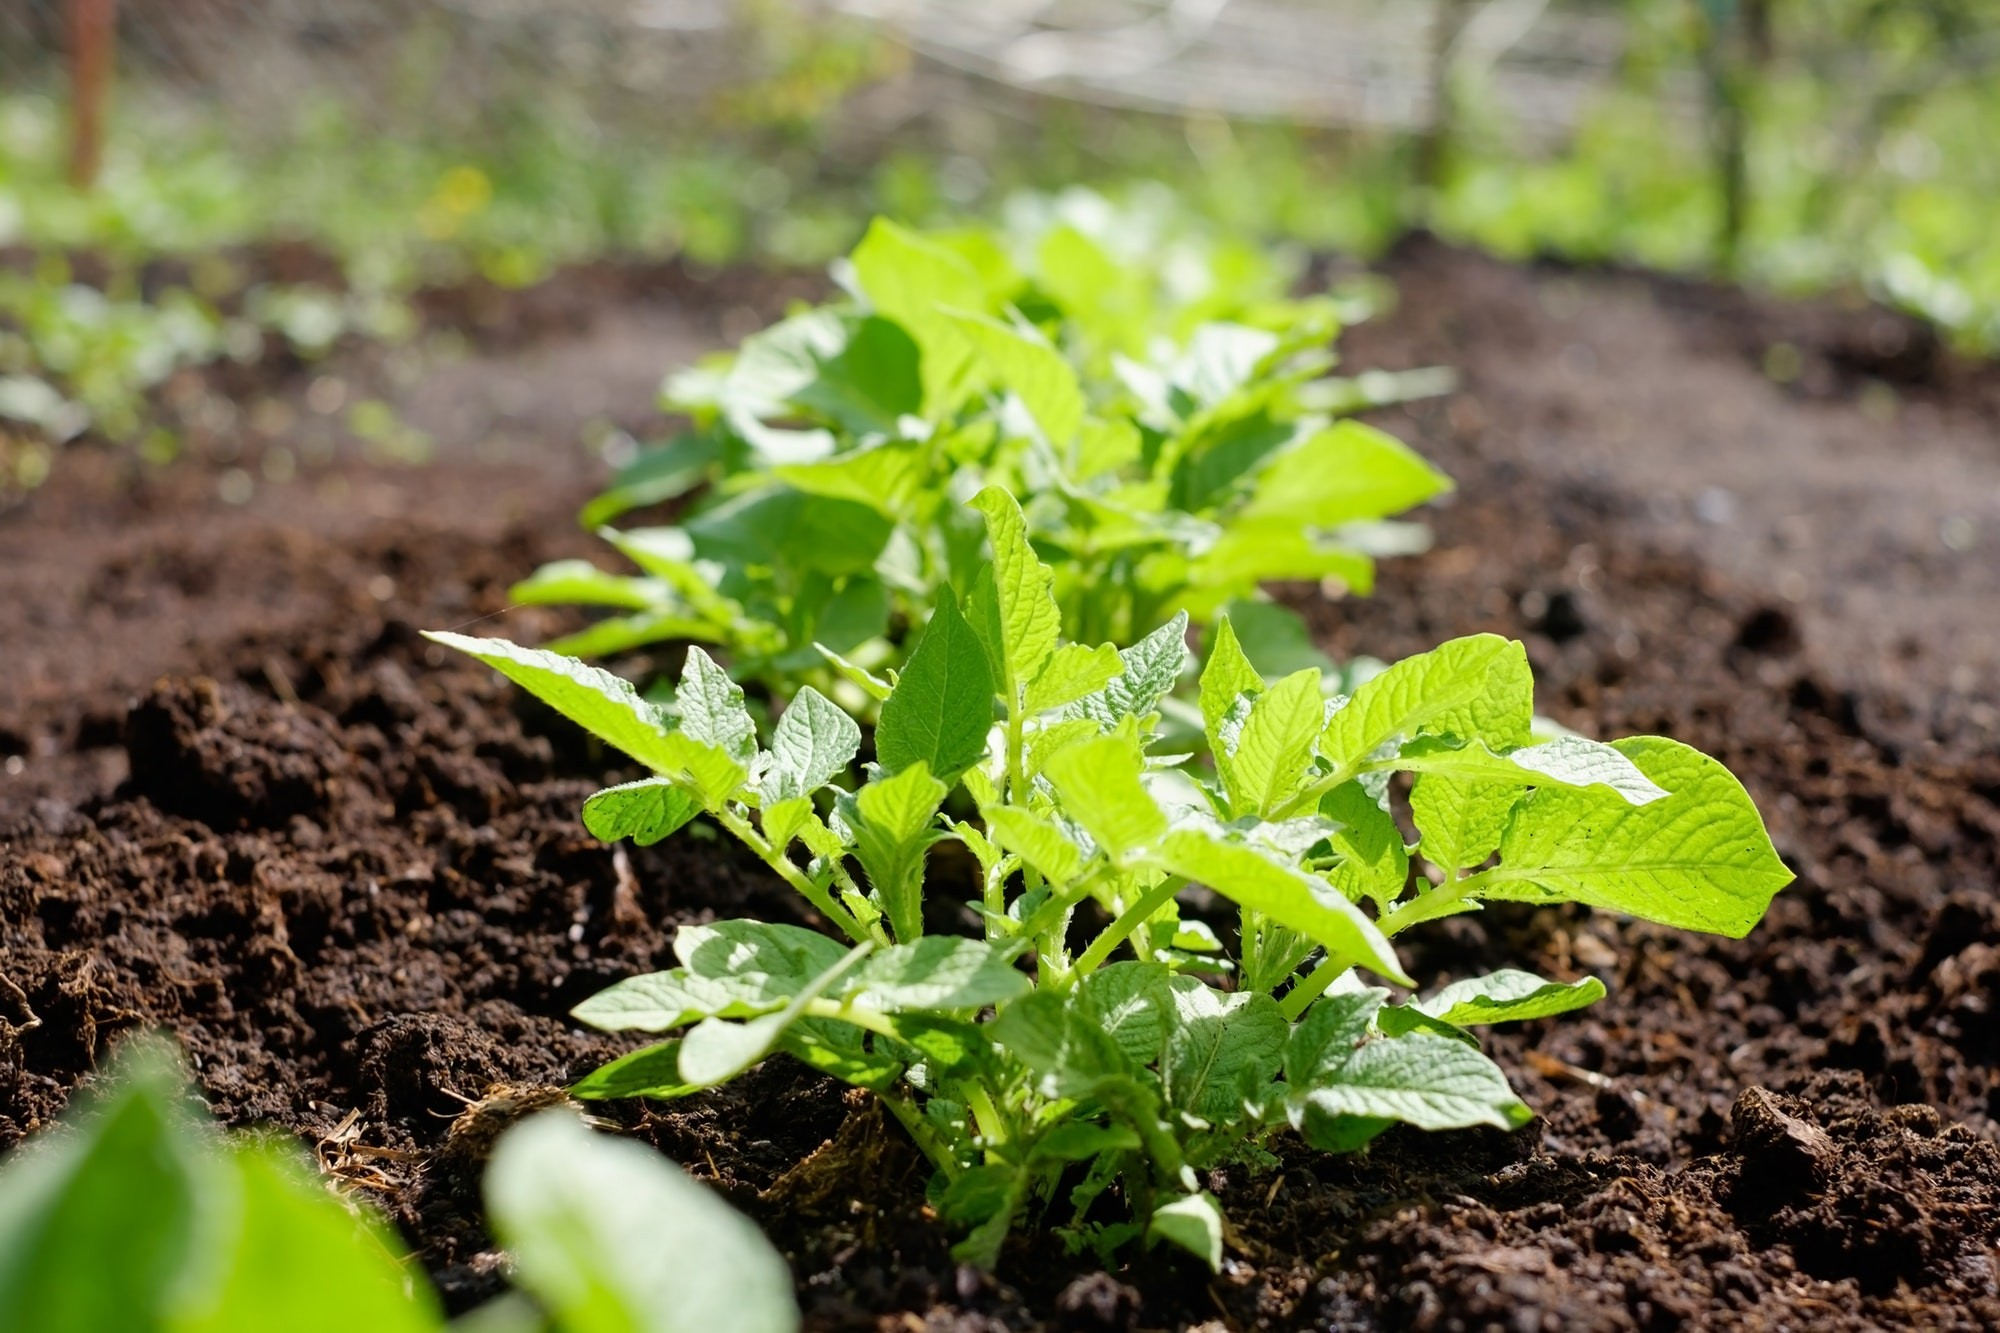 Green potato plant. Leaf of vegetable. Organic food agriculture in garden, field or farm in a row.